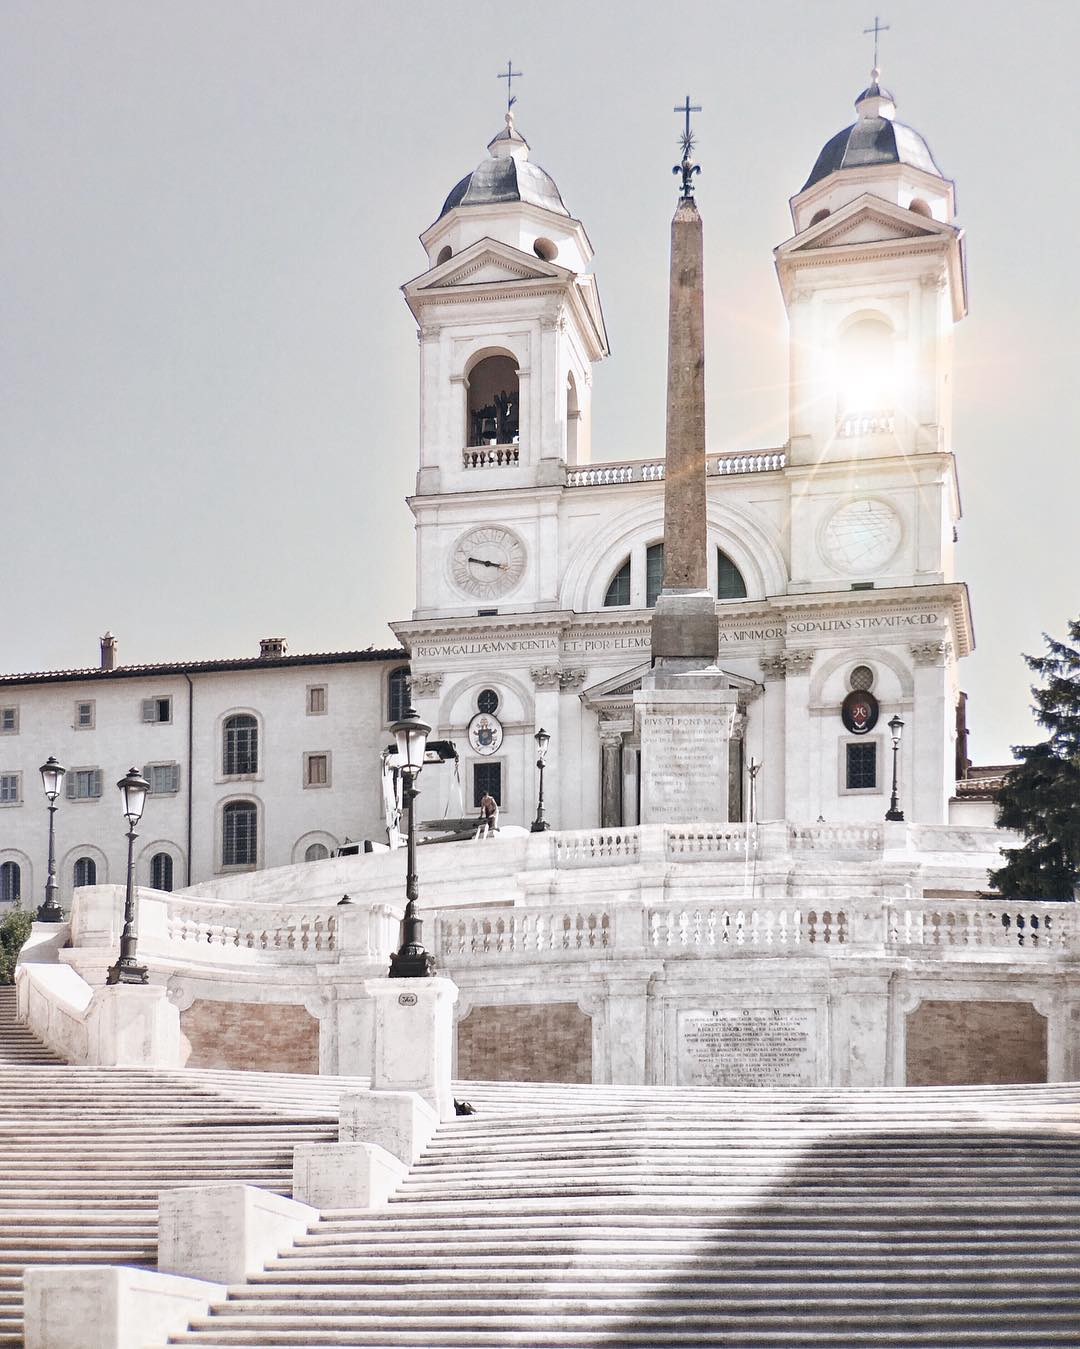 Spanish Steps, Photo Credit: Giulio Pugliese